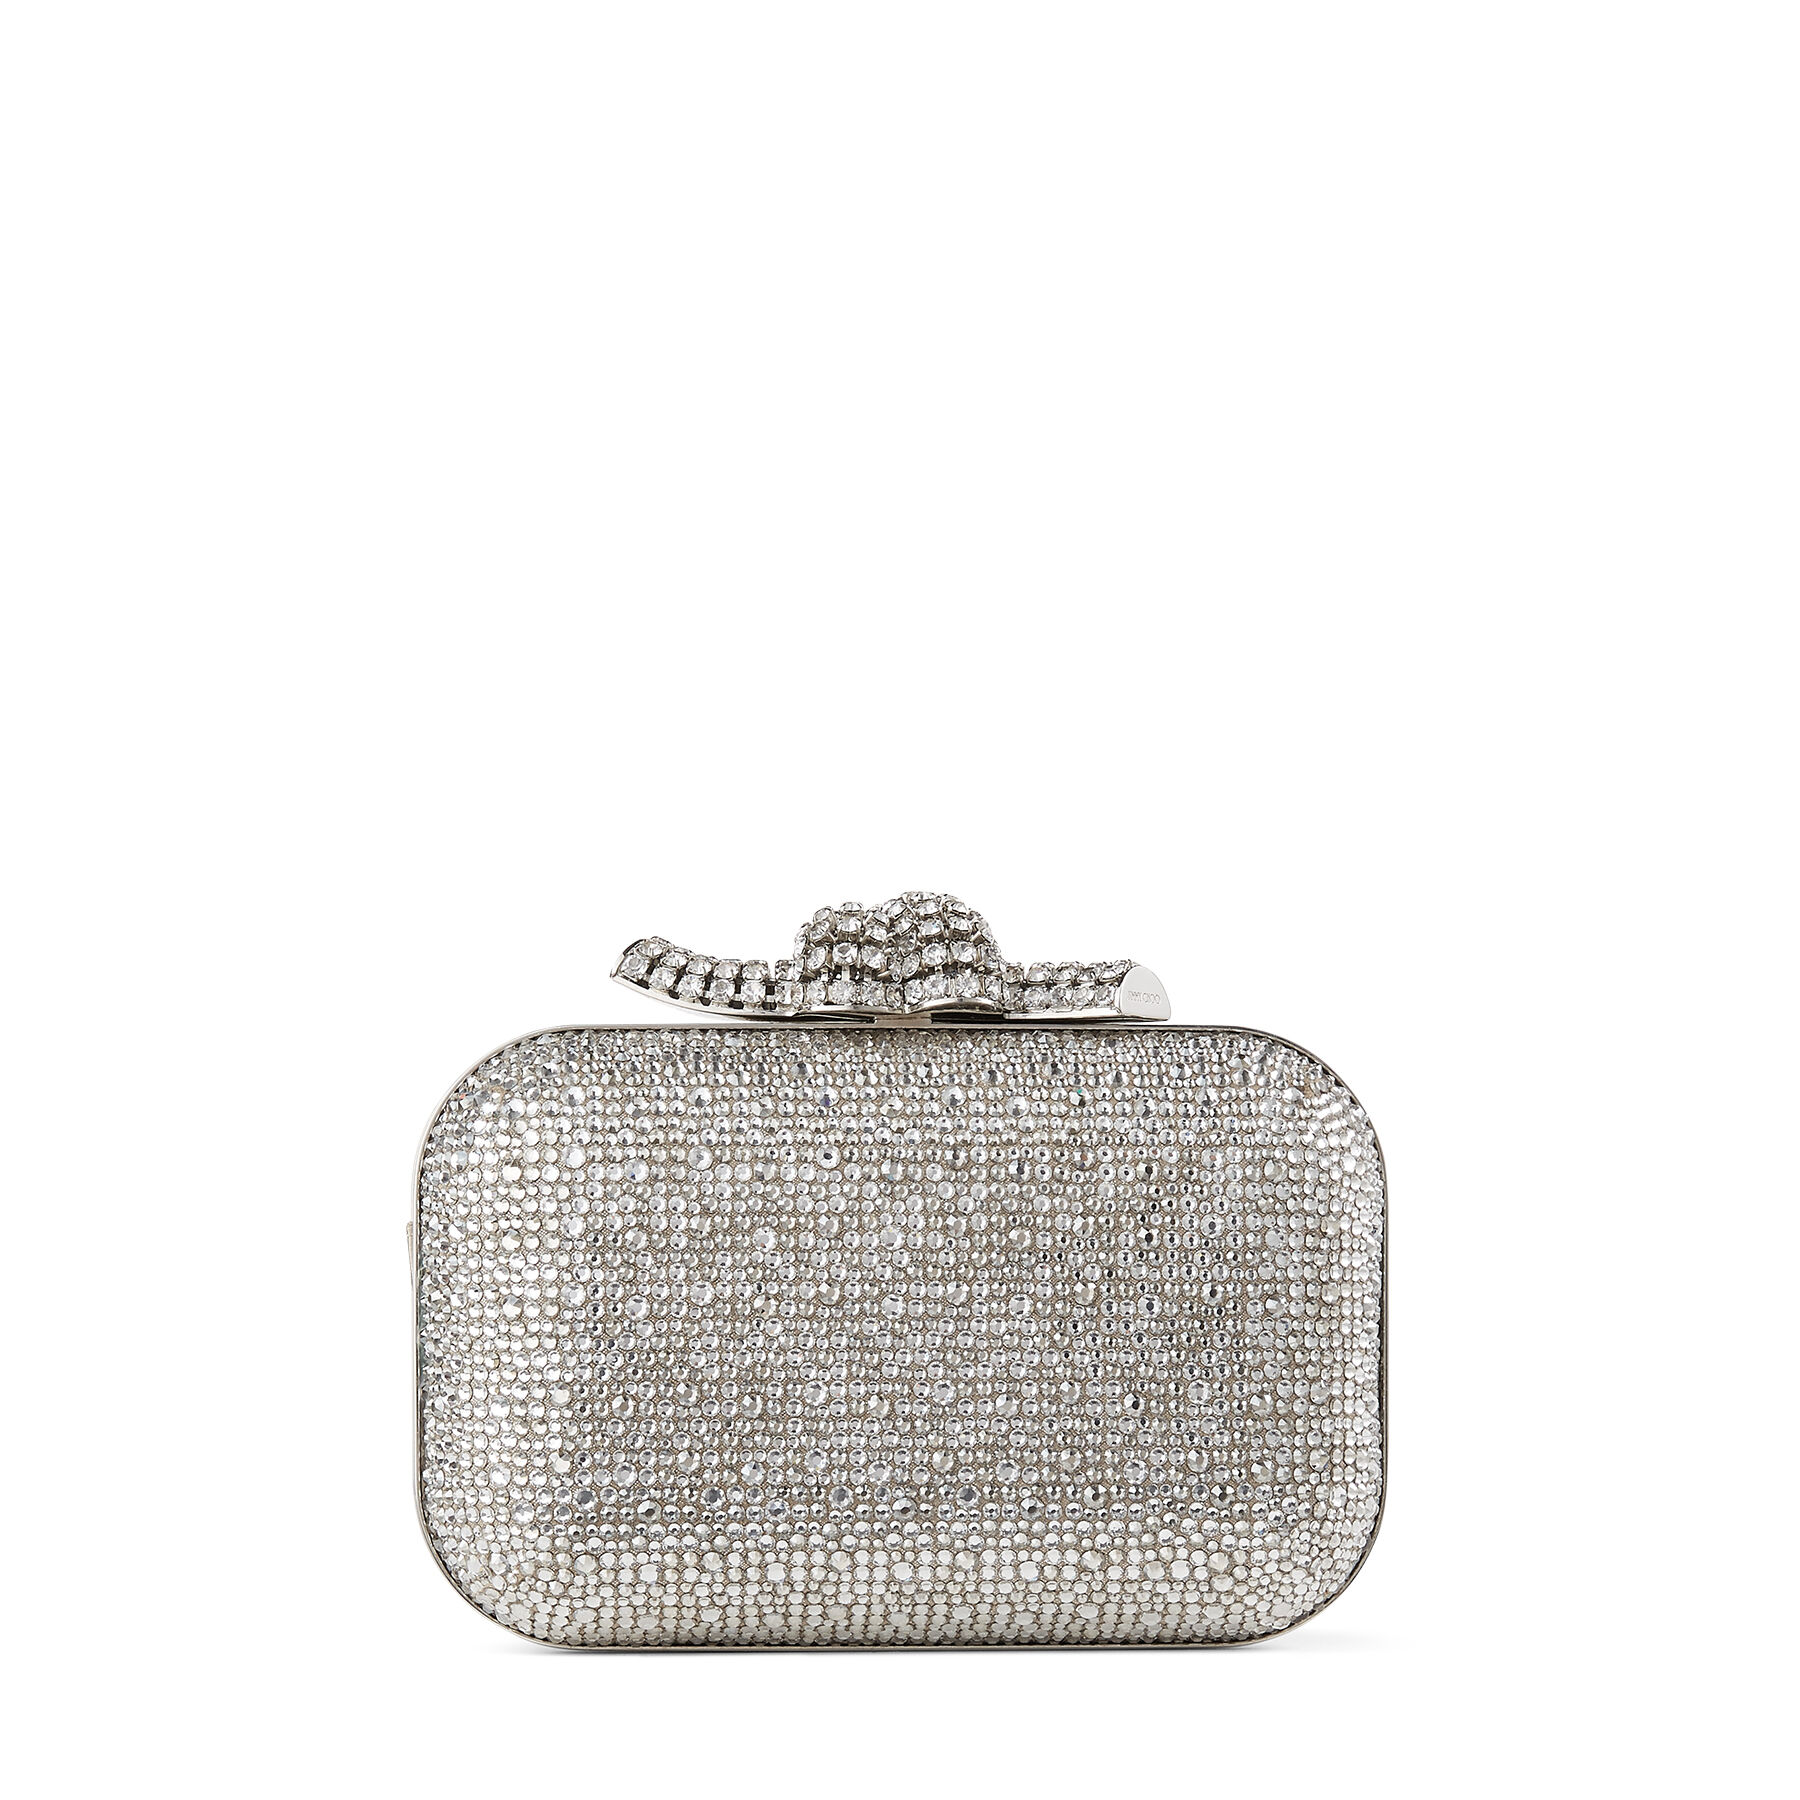 CLOUD - Nude Suede Clutch Bag with Crystals and Knot Clasp